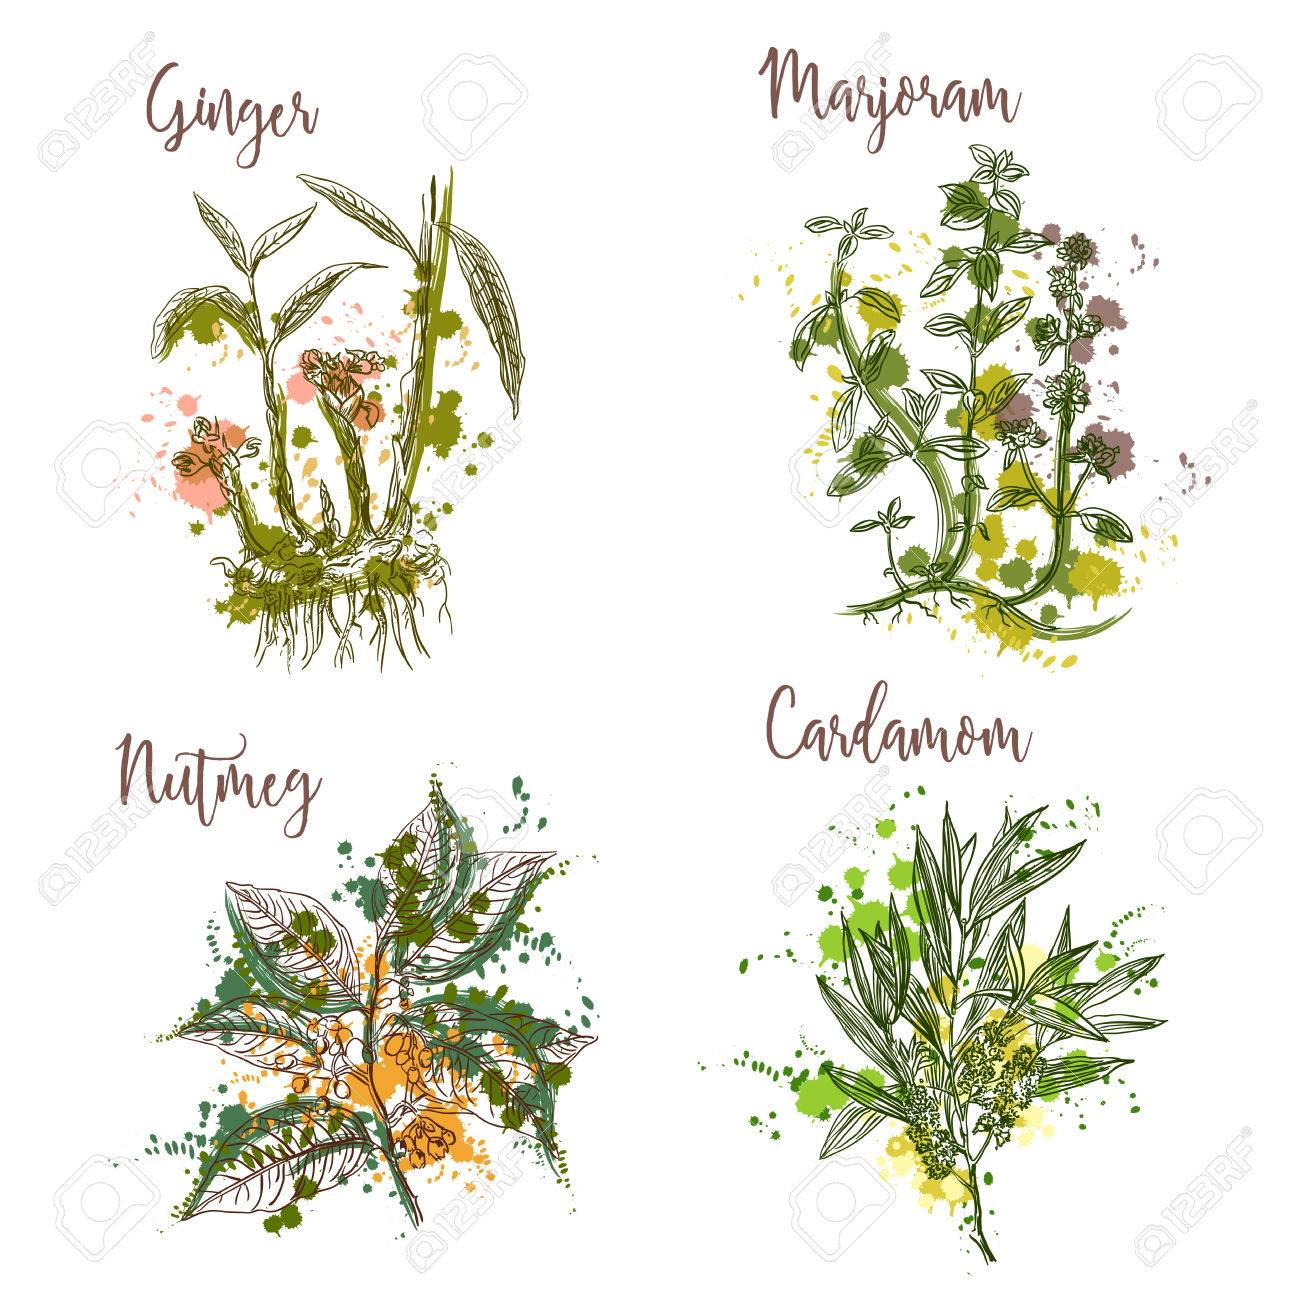 Cooking herbs and spices in watercolor style . Ginger, marjoram, nutmeg, cardamom. Retro hand drawn vector illustration. Retro banner, card, scrap booking, postcard, poster - 56891484